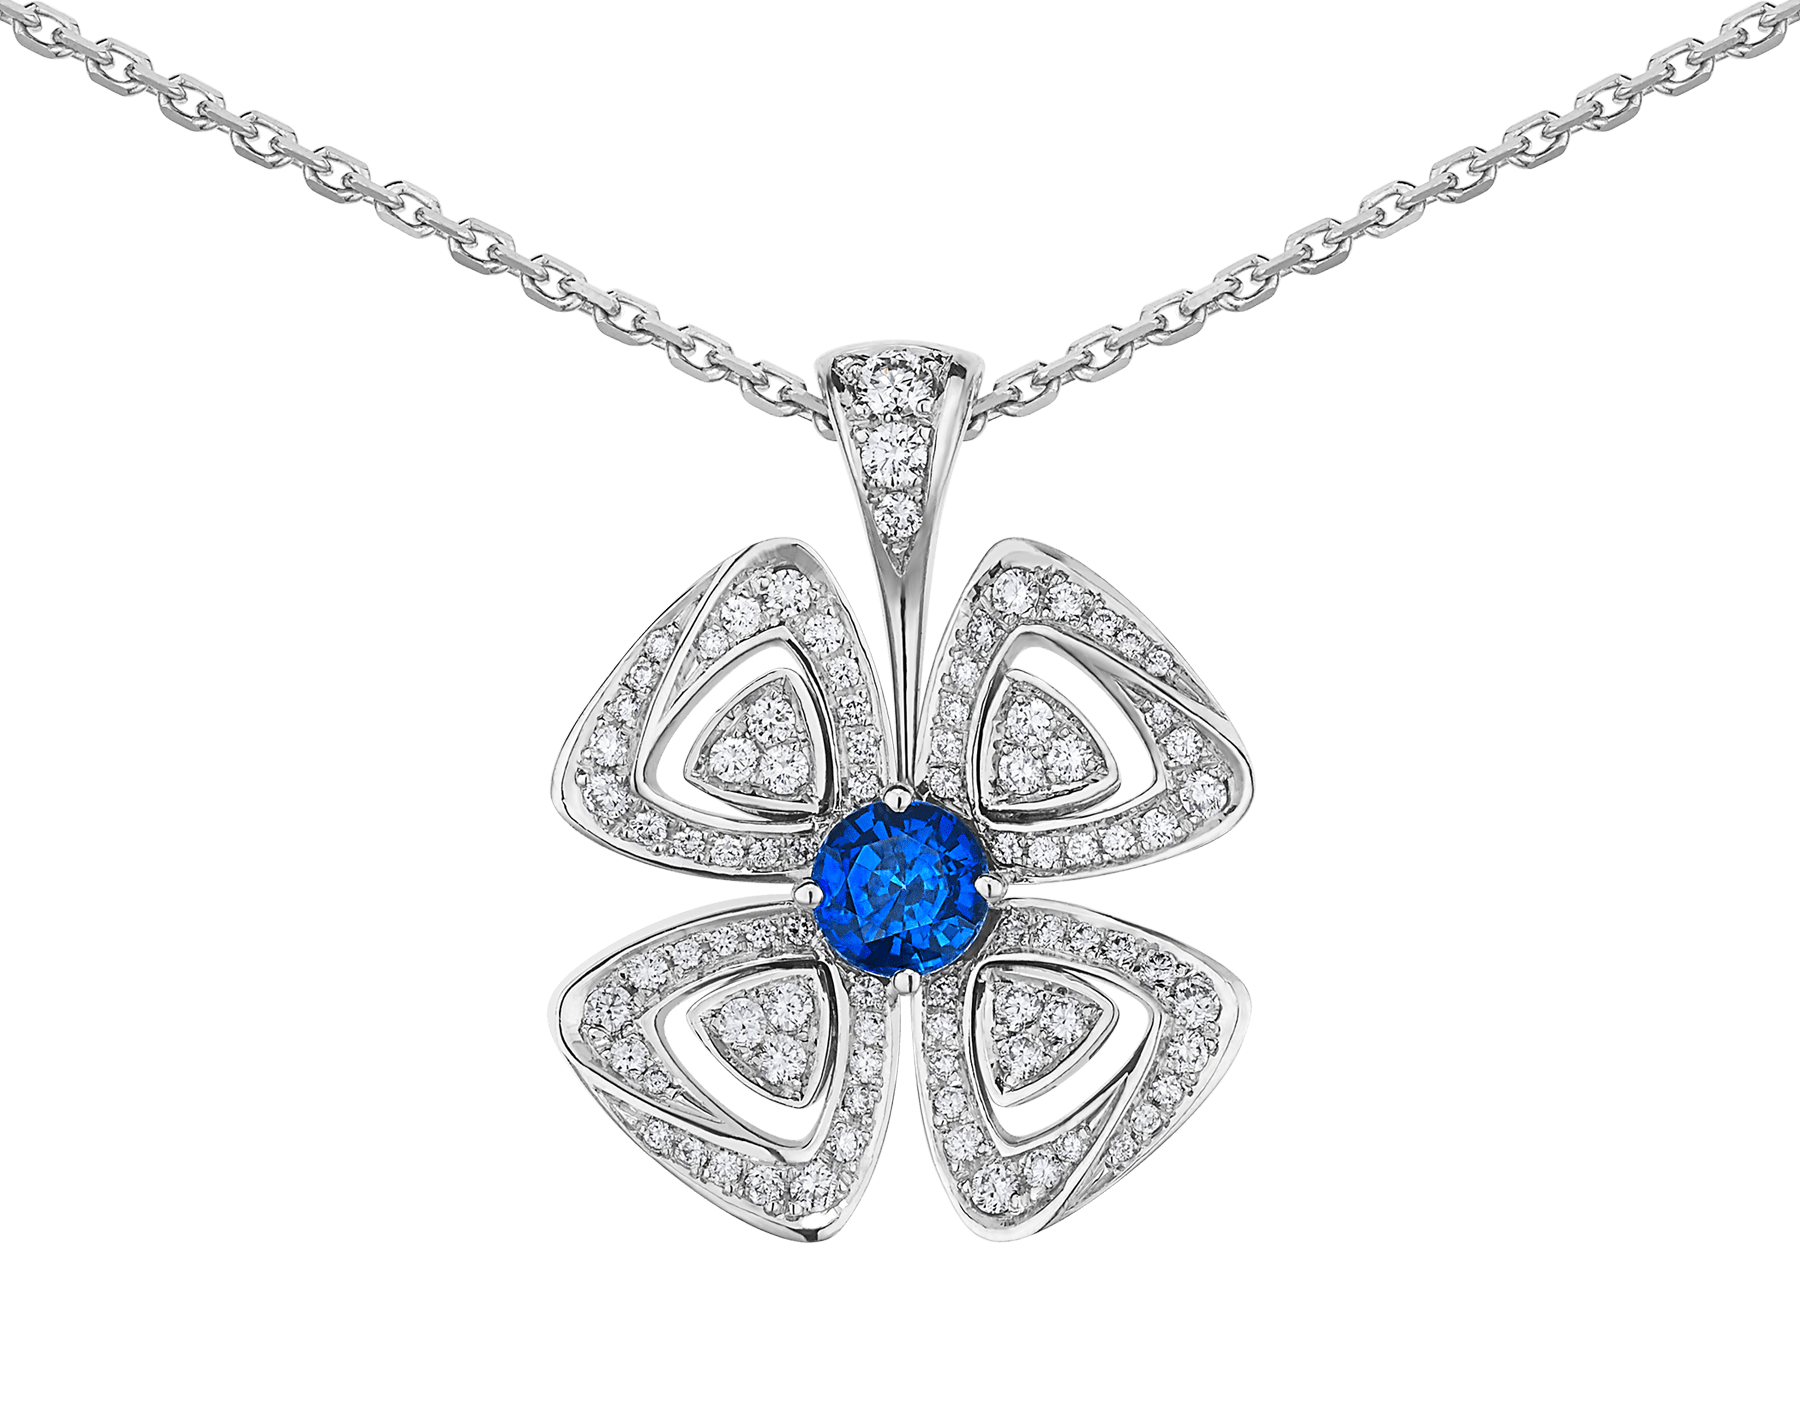 Fiorever 18 kt white gold pendant necklace set with a central brilliant-cut sapphire (0.43 ct) and pavé diamonds (0.31 ct) 358426 image 3